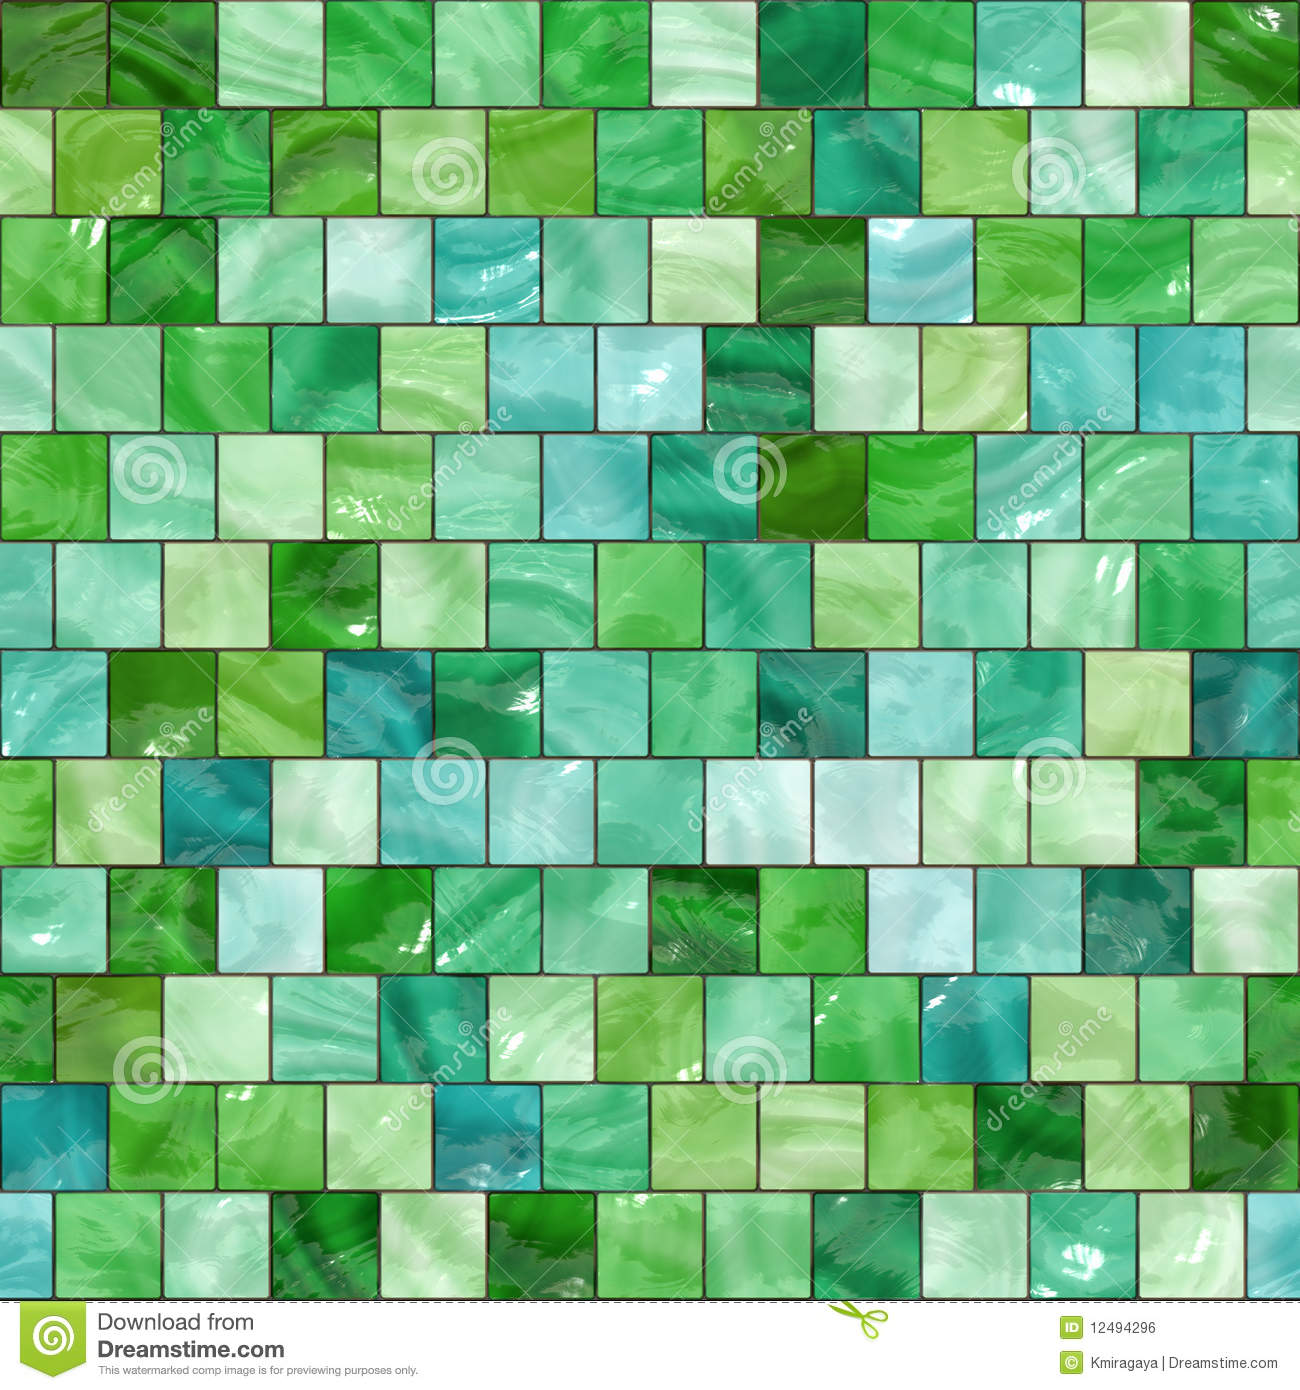 Seamless Green Tiles Texture Royalty Free Stock Image ...